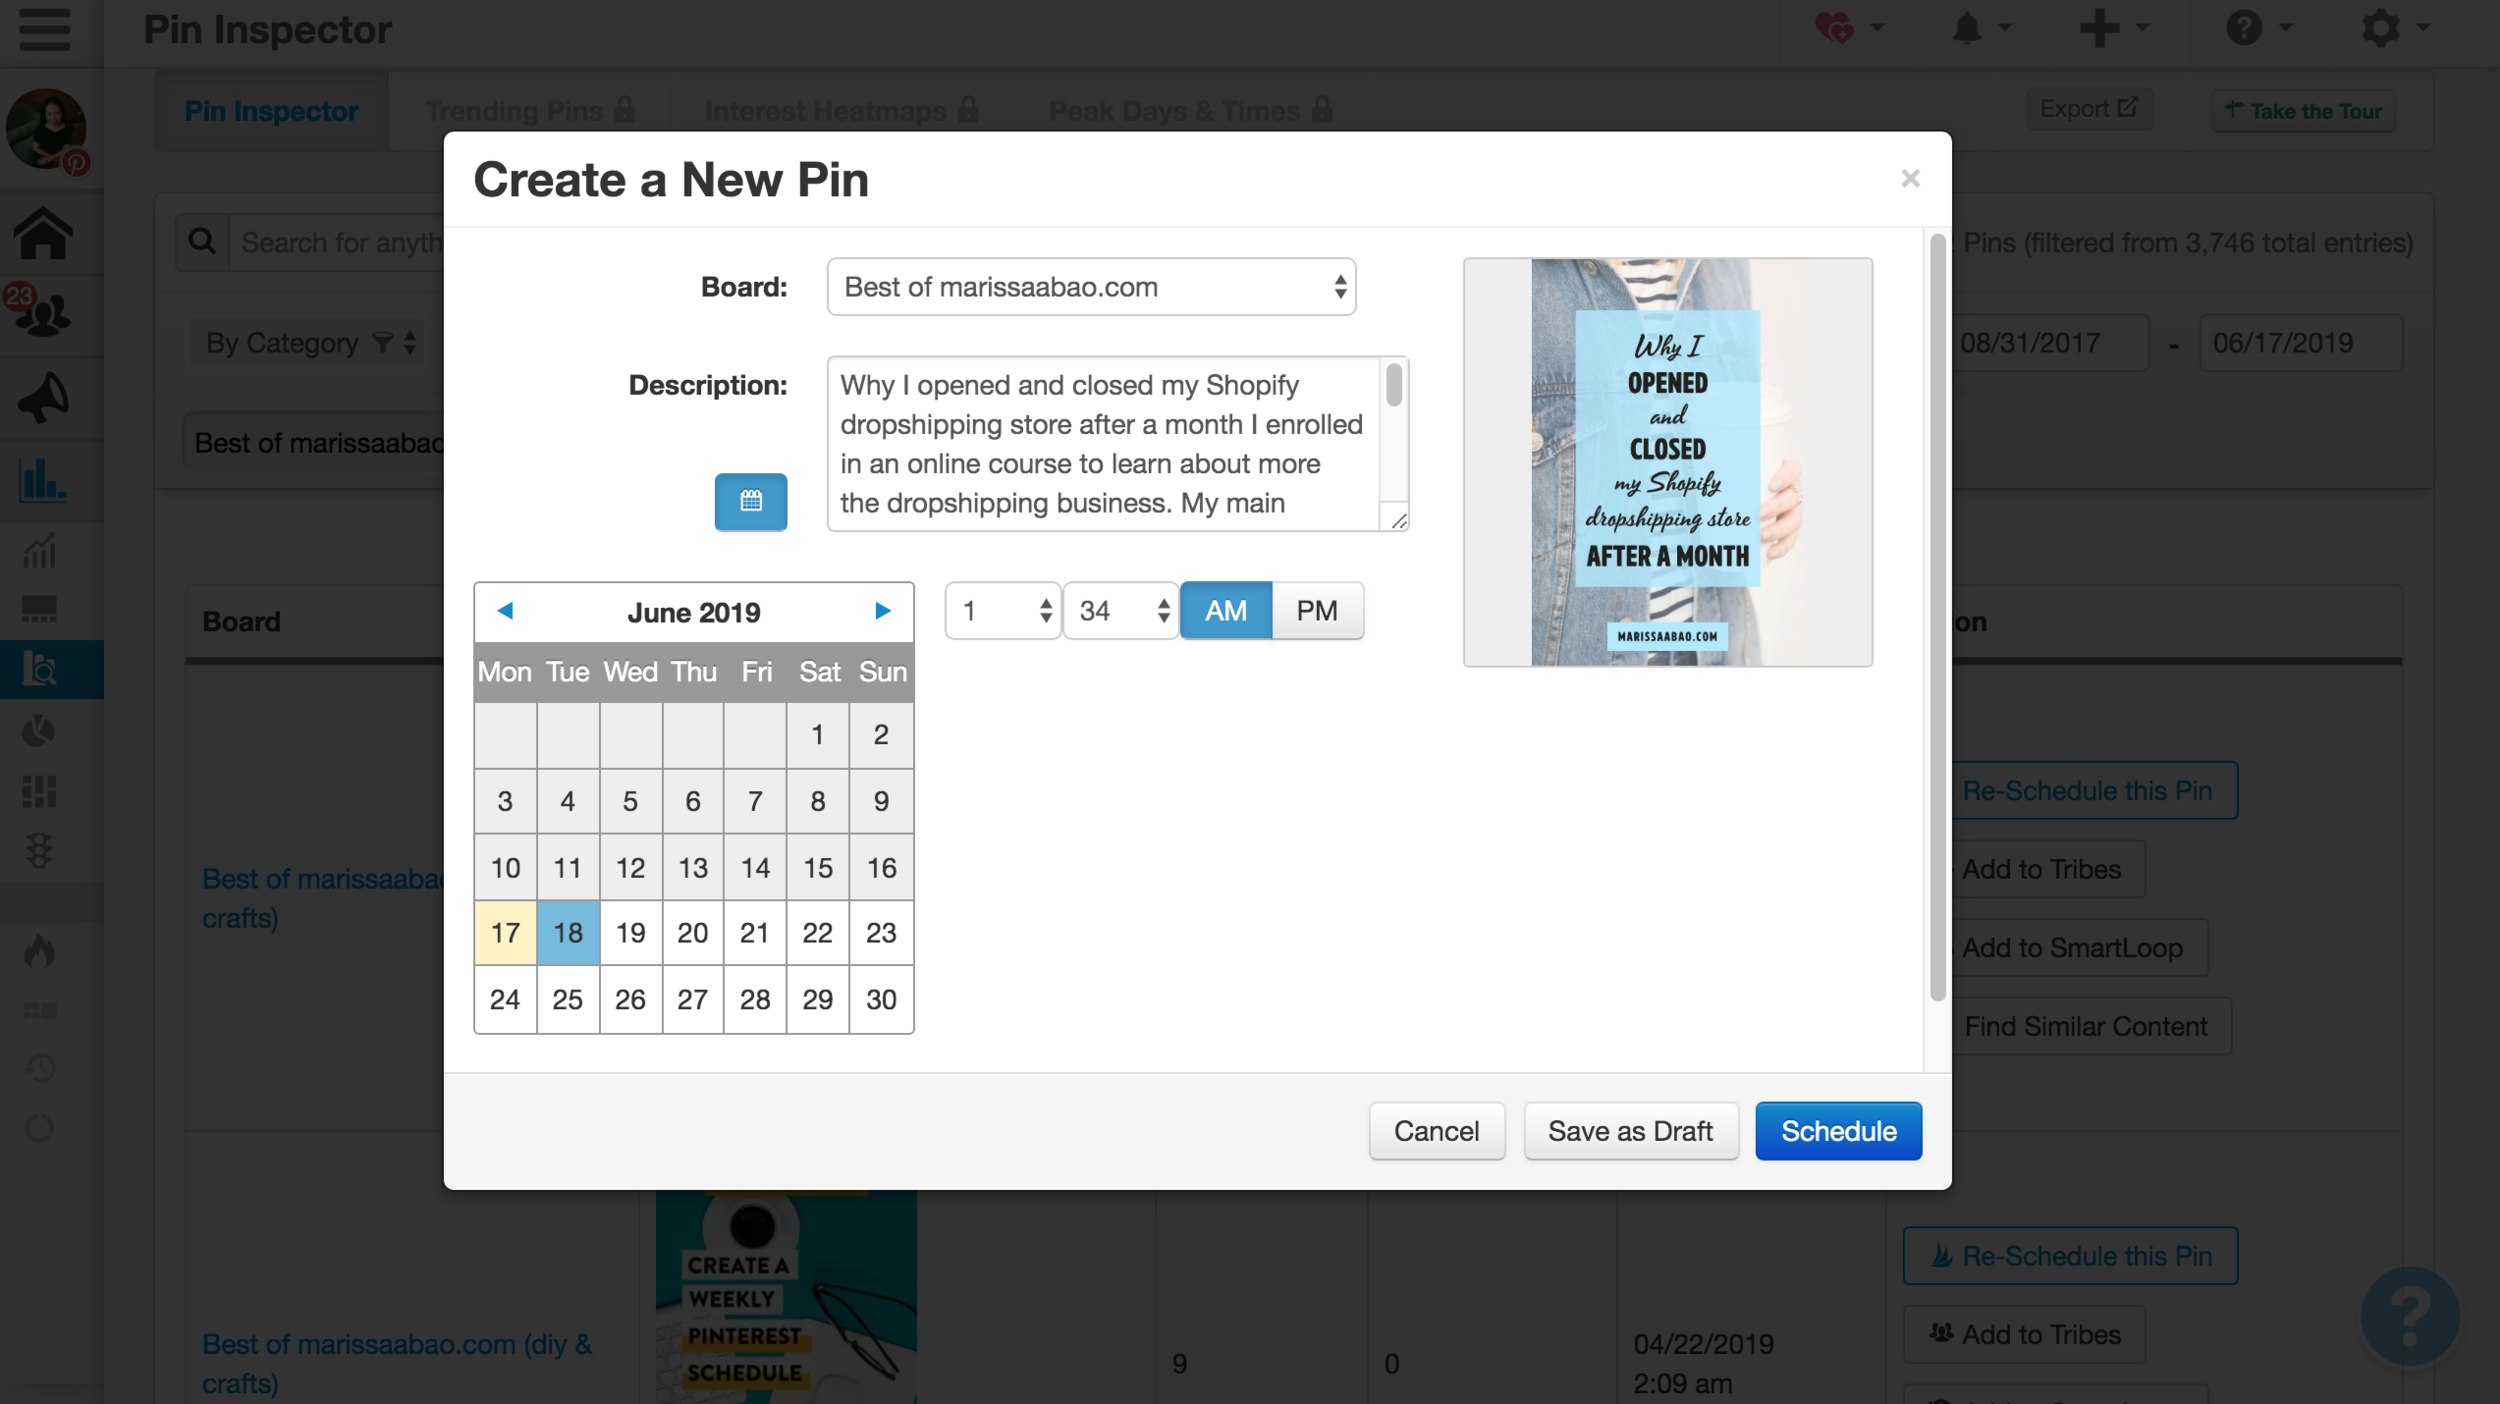 How to Use Tailwind Pin Inspector to Find Your Best Pins #tailwindapp #pinterestva #pinterestvirtualassistant #virtualassistant